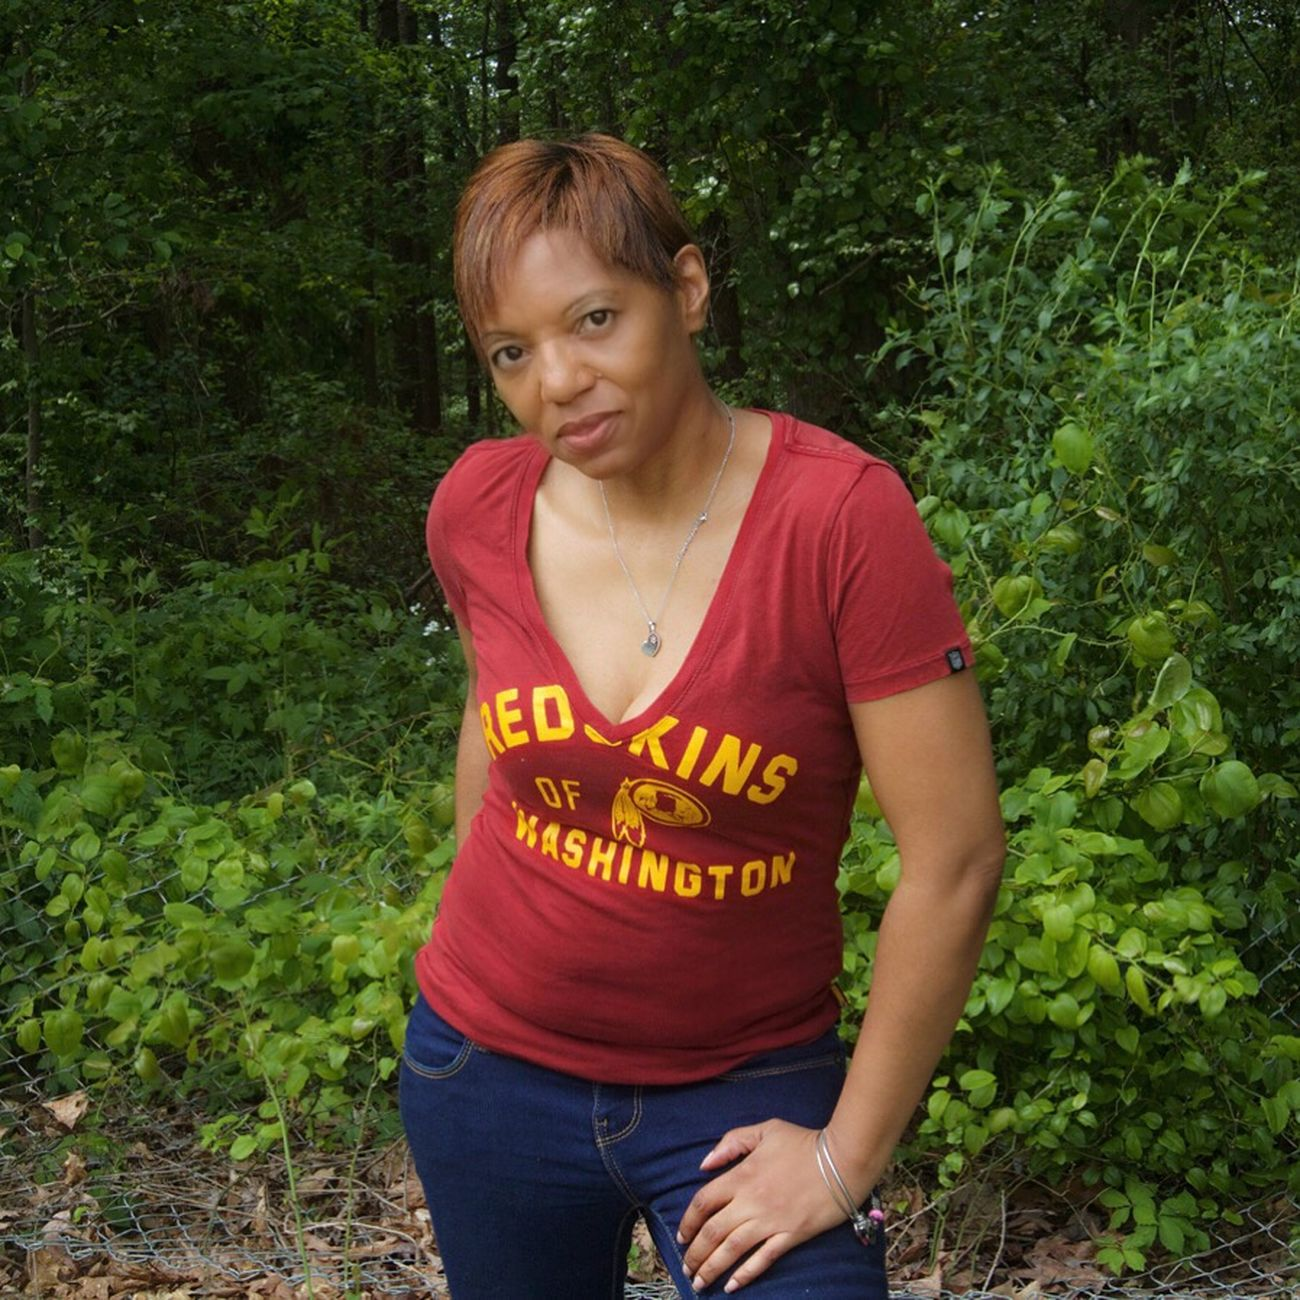 Representing Redskins Washington Redskins  HTTR Redskins All Day Washington NFL Beautiful BlackWoman Blackwomen Pretty Pretty Girl Beautiful Lady Beautiful Ladies Living A Beautiful Life Woman Women Of EyeEm Woman Portrait Fitgirl